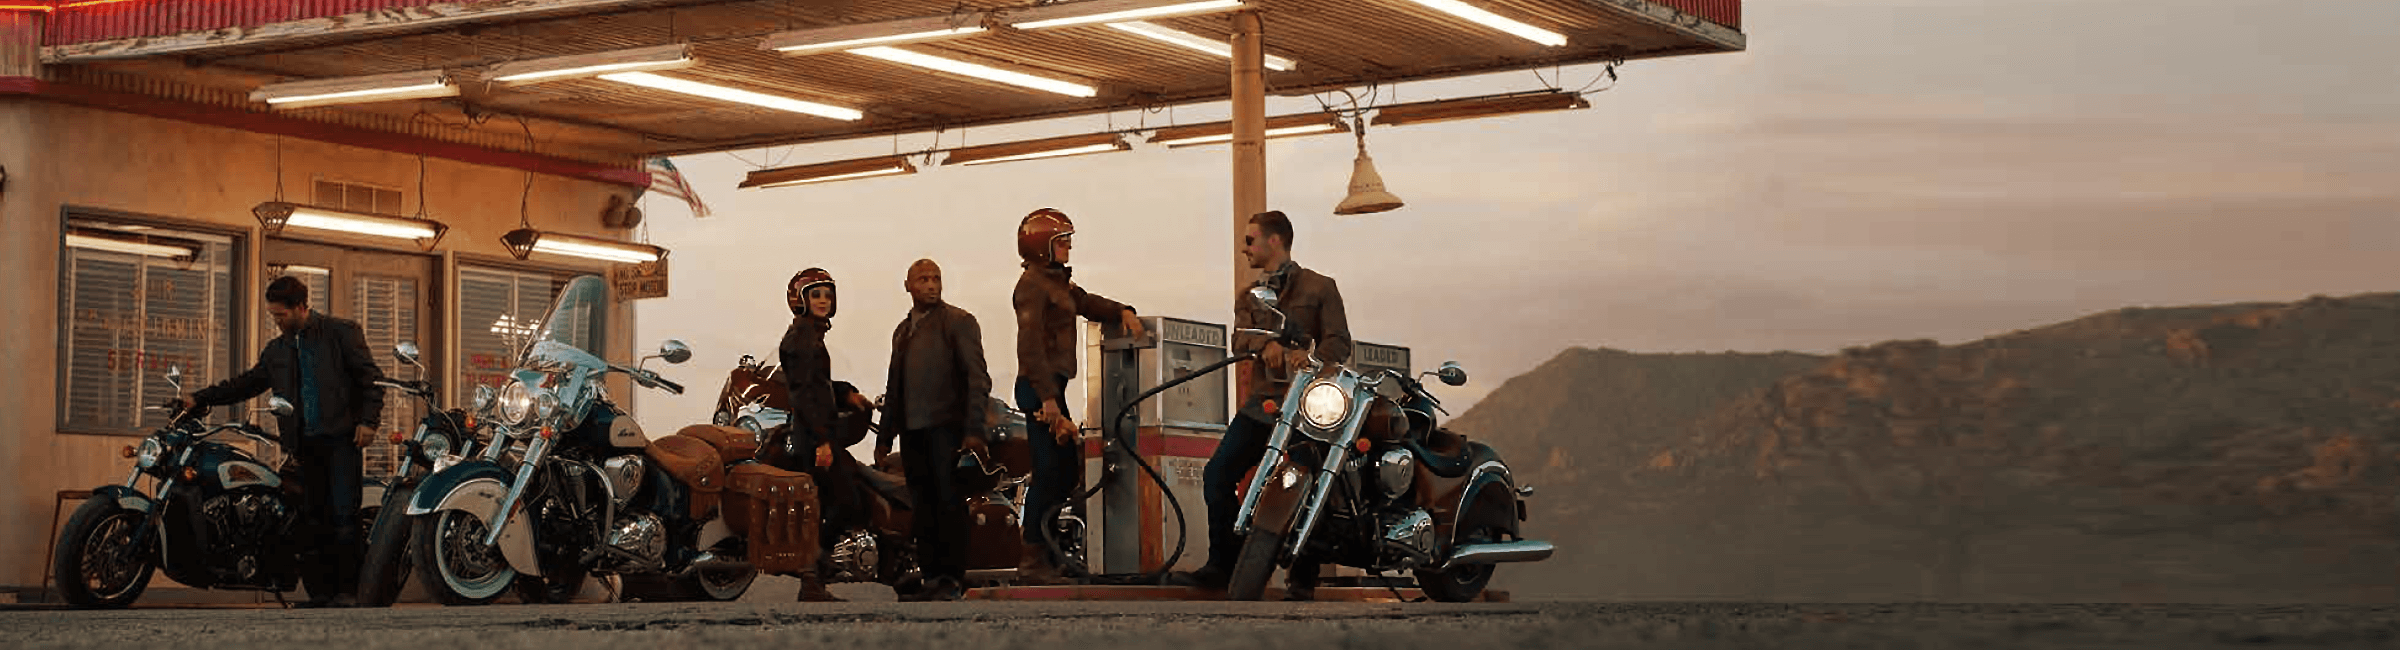 2017 Indian Motorcycle Images